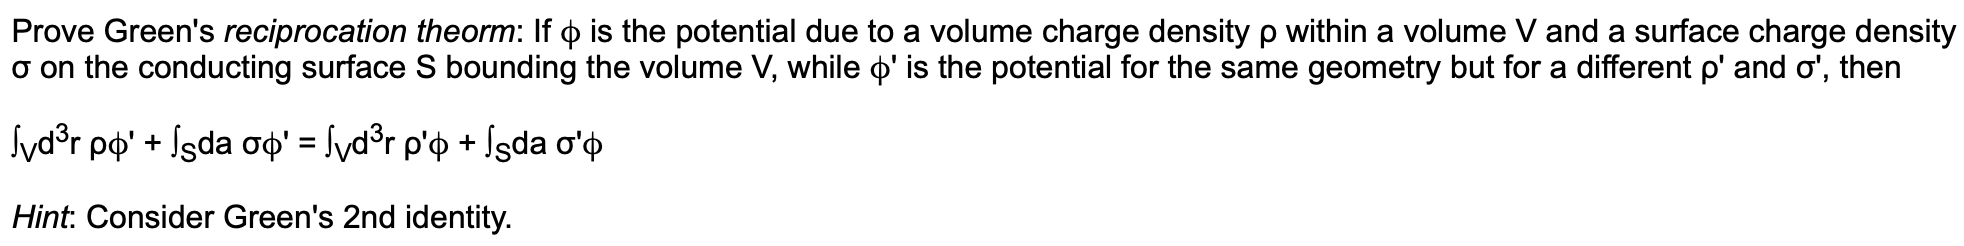 Prove Green's reciprocation theorm: If p is the potential due to a volume charge density p within a volume V and a surface charge density a on the conducting surface S bounding the volume V, while ' is the potential for the same geometry but for a different p' and o', then vdsr ppIsda op' = /vd°r p'p + fsda o'p Hint: Consider Green's 2nd identity.